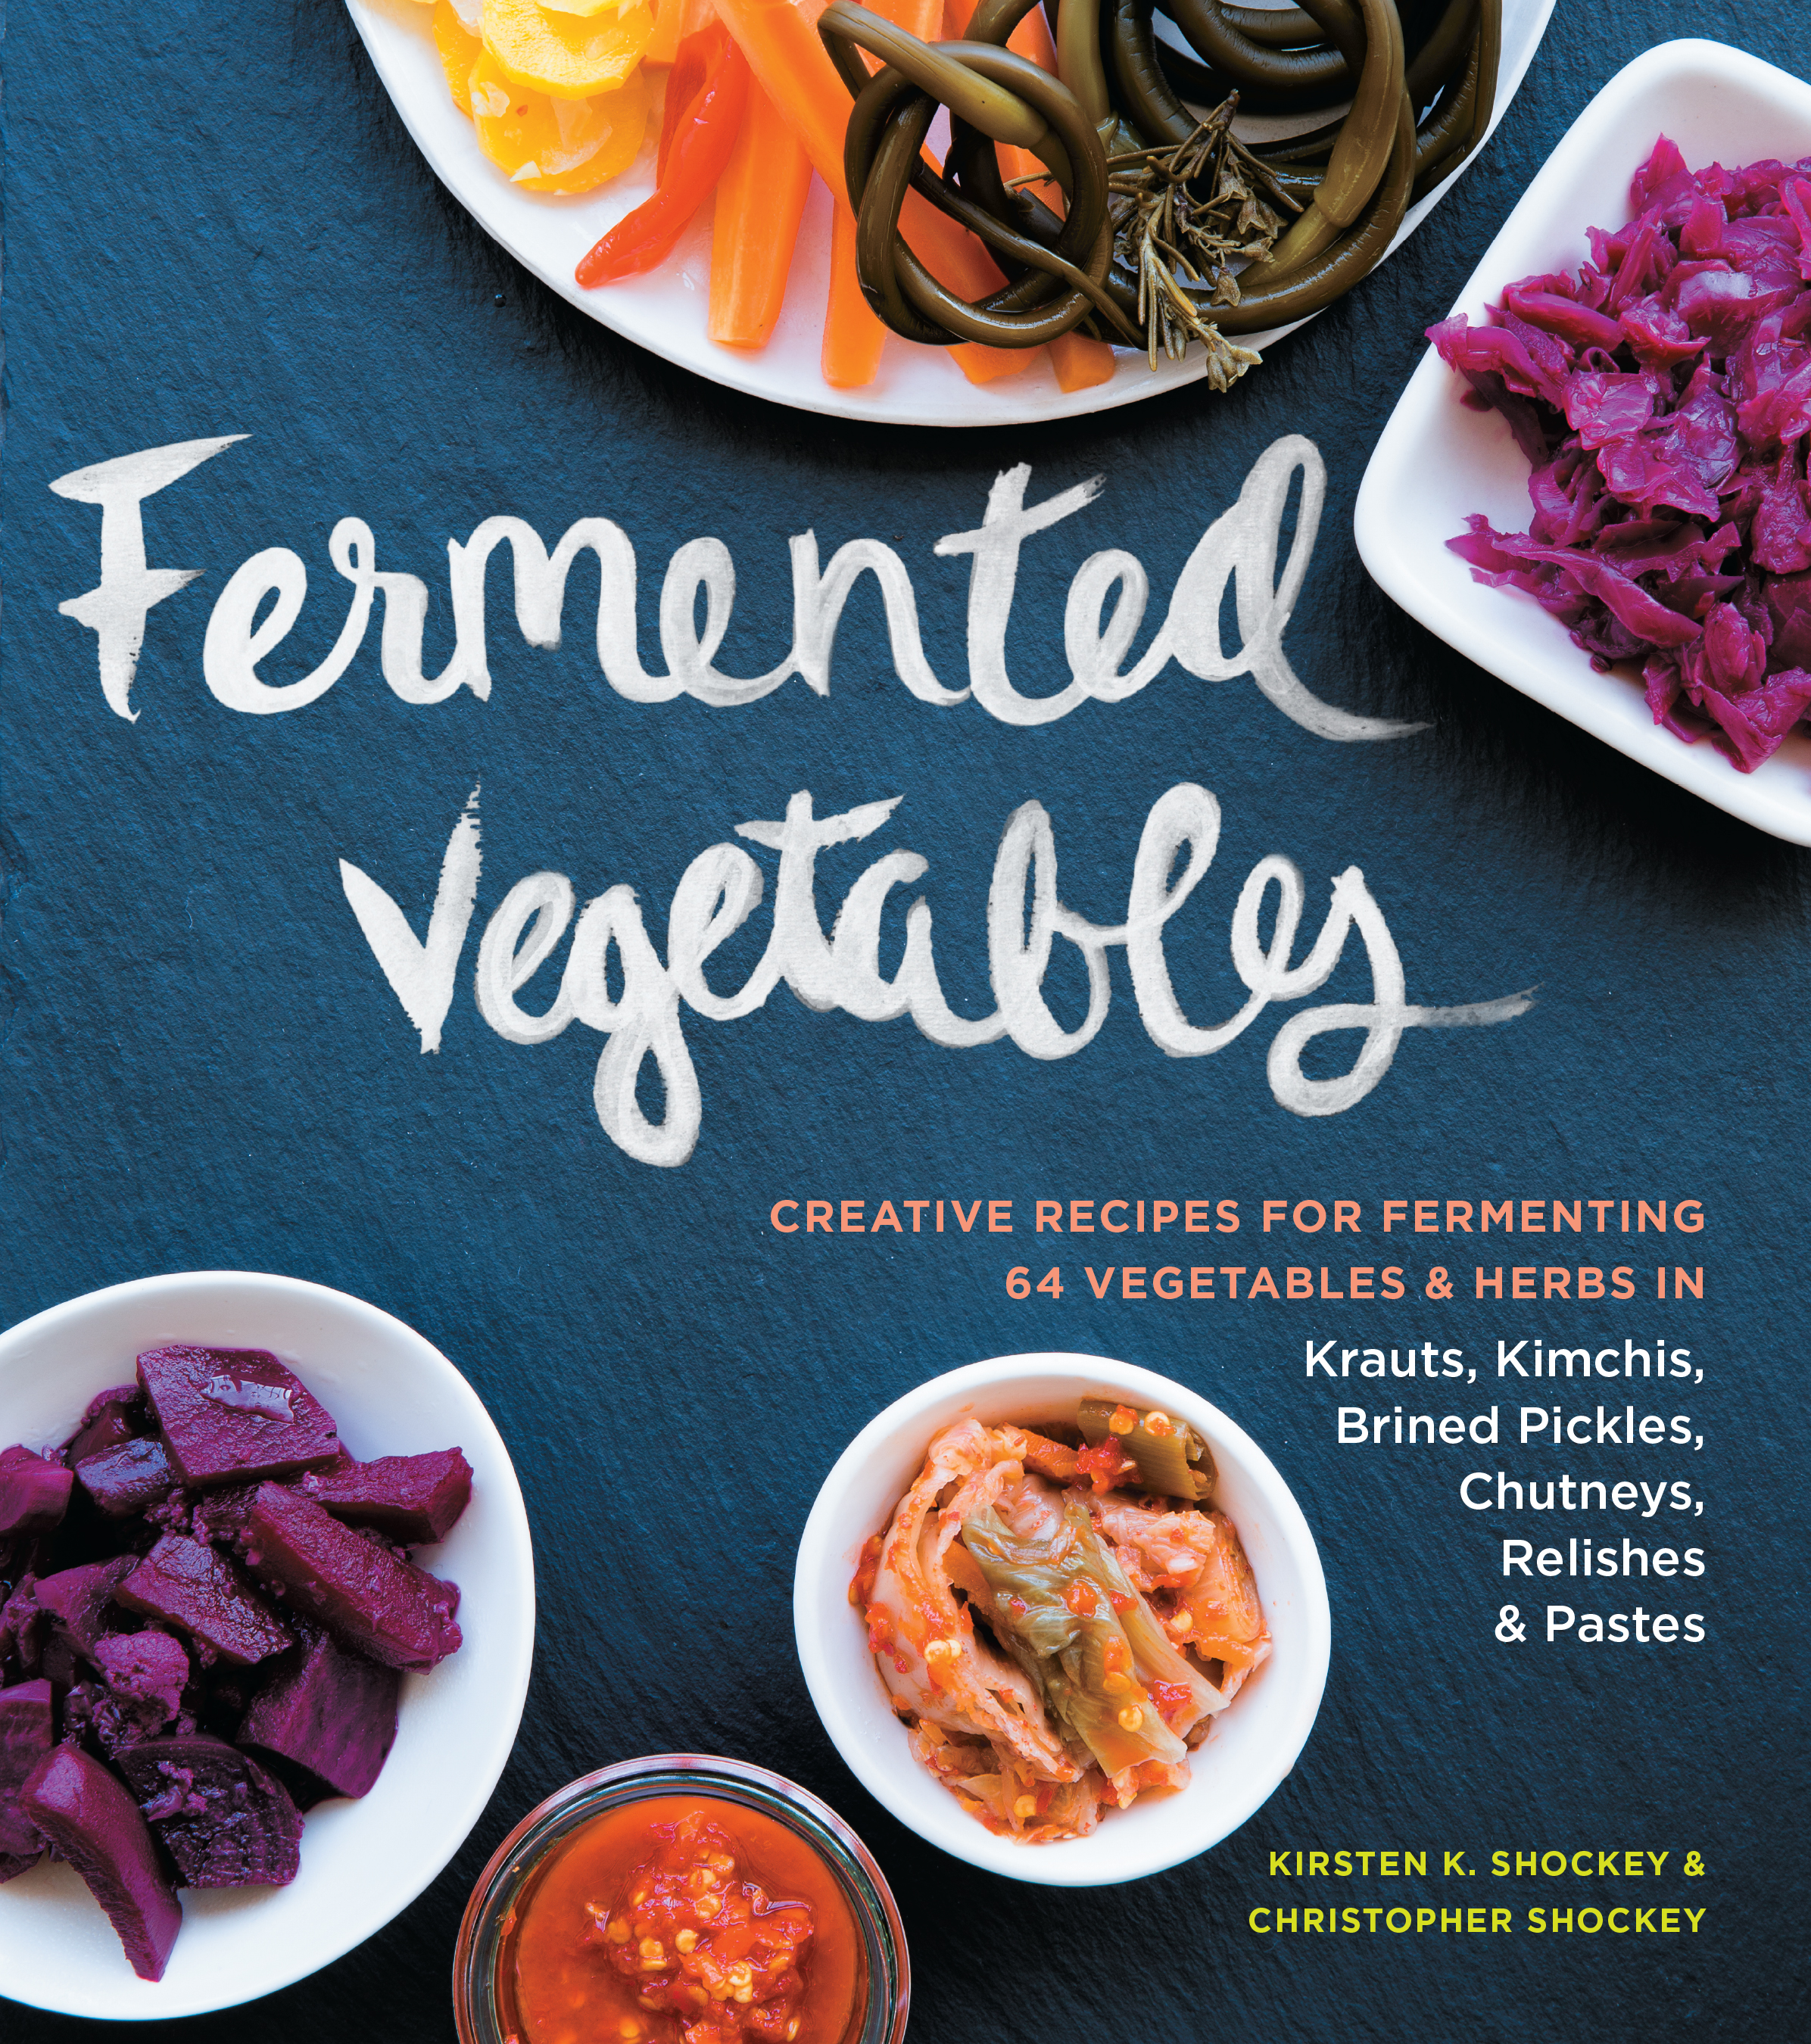 Fermented Vegetables Creative Recipes for Fermenting 64 Vegetables & Herbs in Krauts, Kimchis, Brined Pickles, Chutneys, Relishes & Pastes - Kirsten K. Shockey